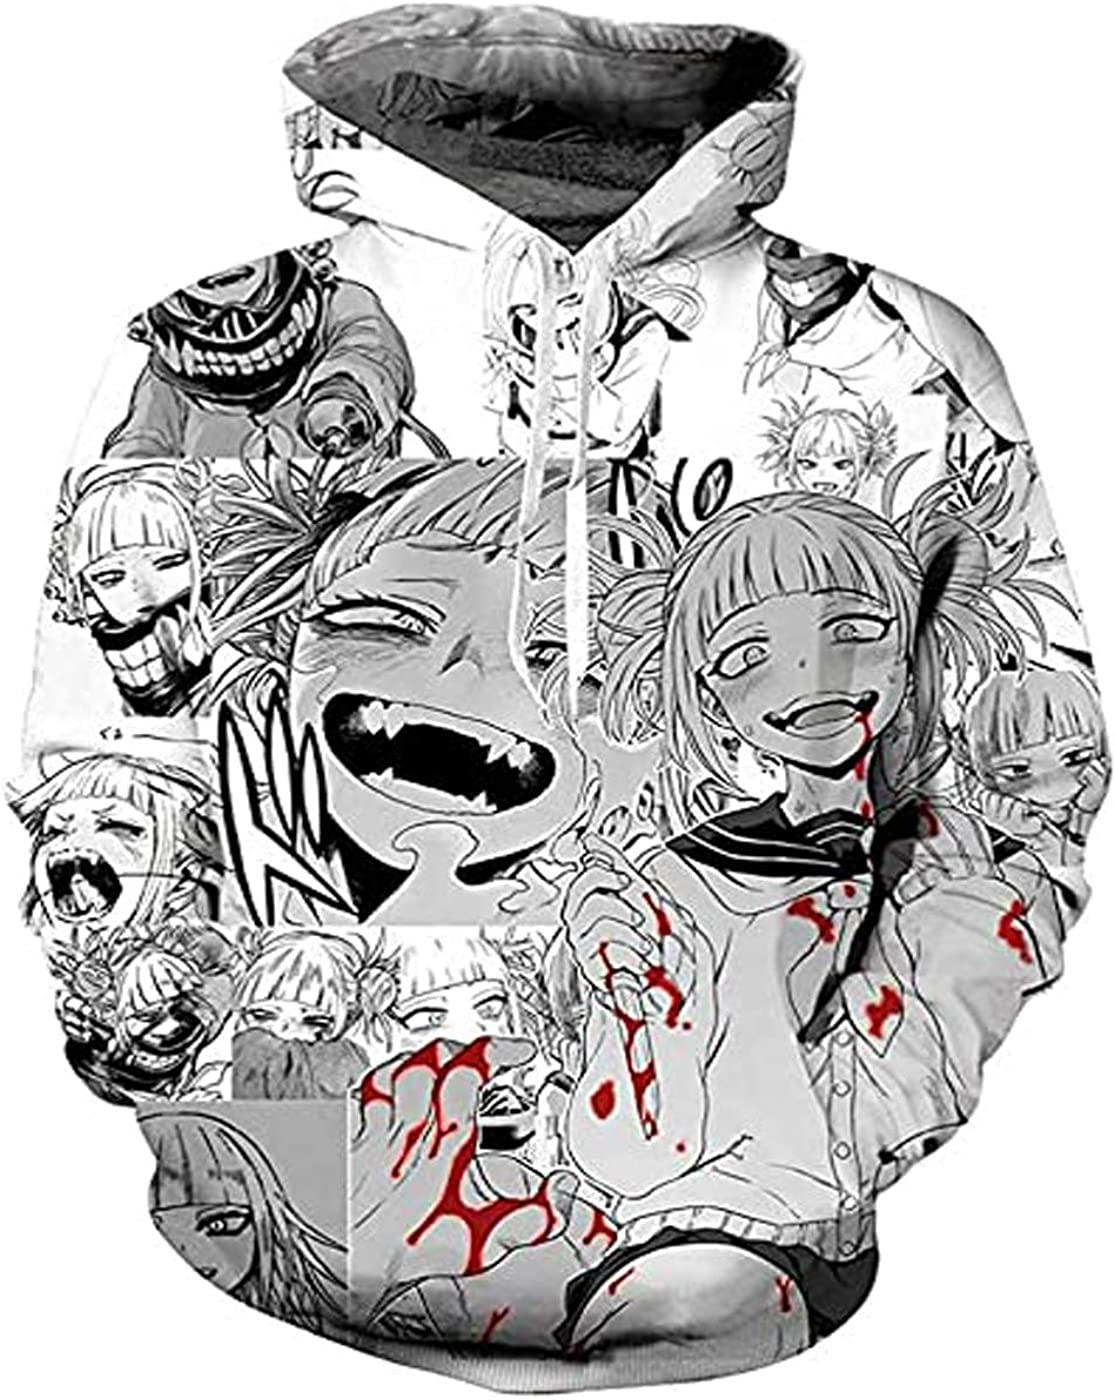 3D Printed Pullover Inexpensive Pockets Anime Sweatshirts Hoodie Max 78% OFF Toga Himiko